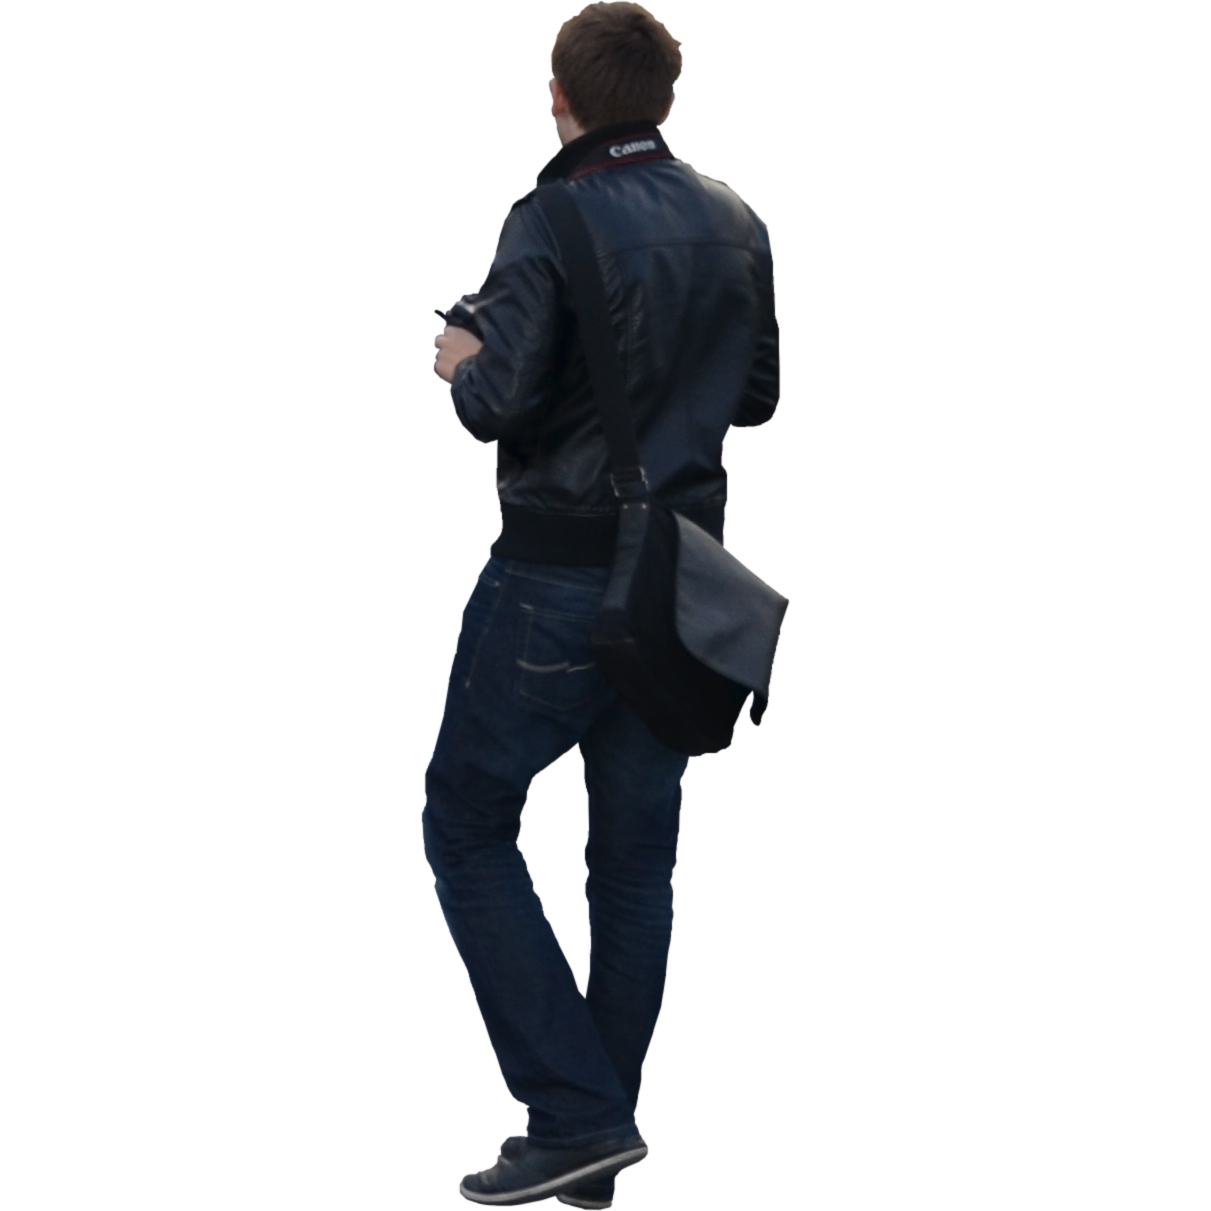 Download Free High quality People Png Transparent Images #32512.